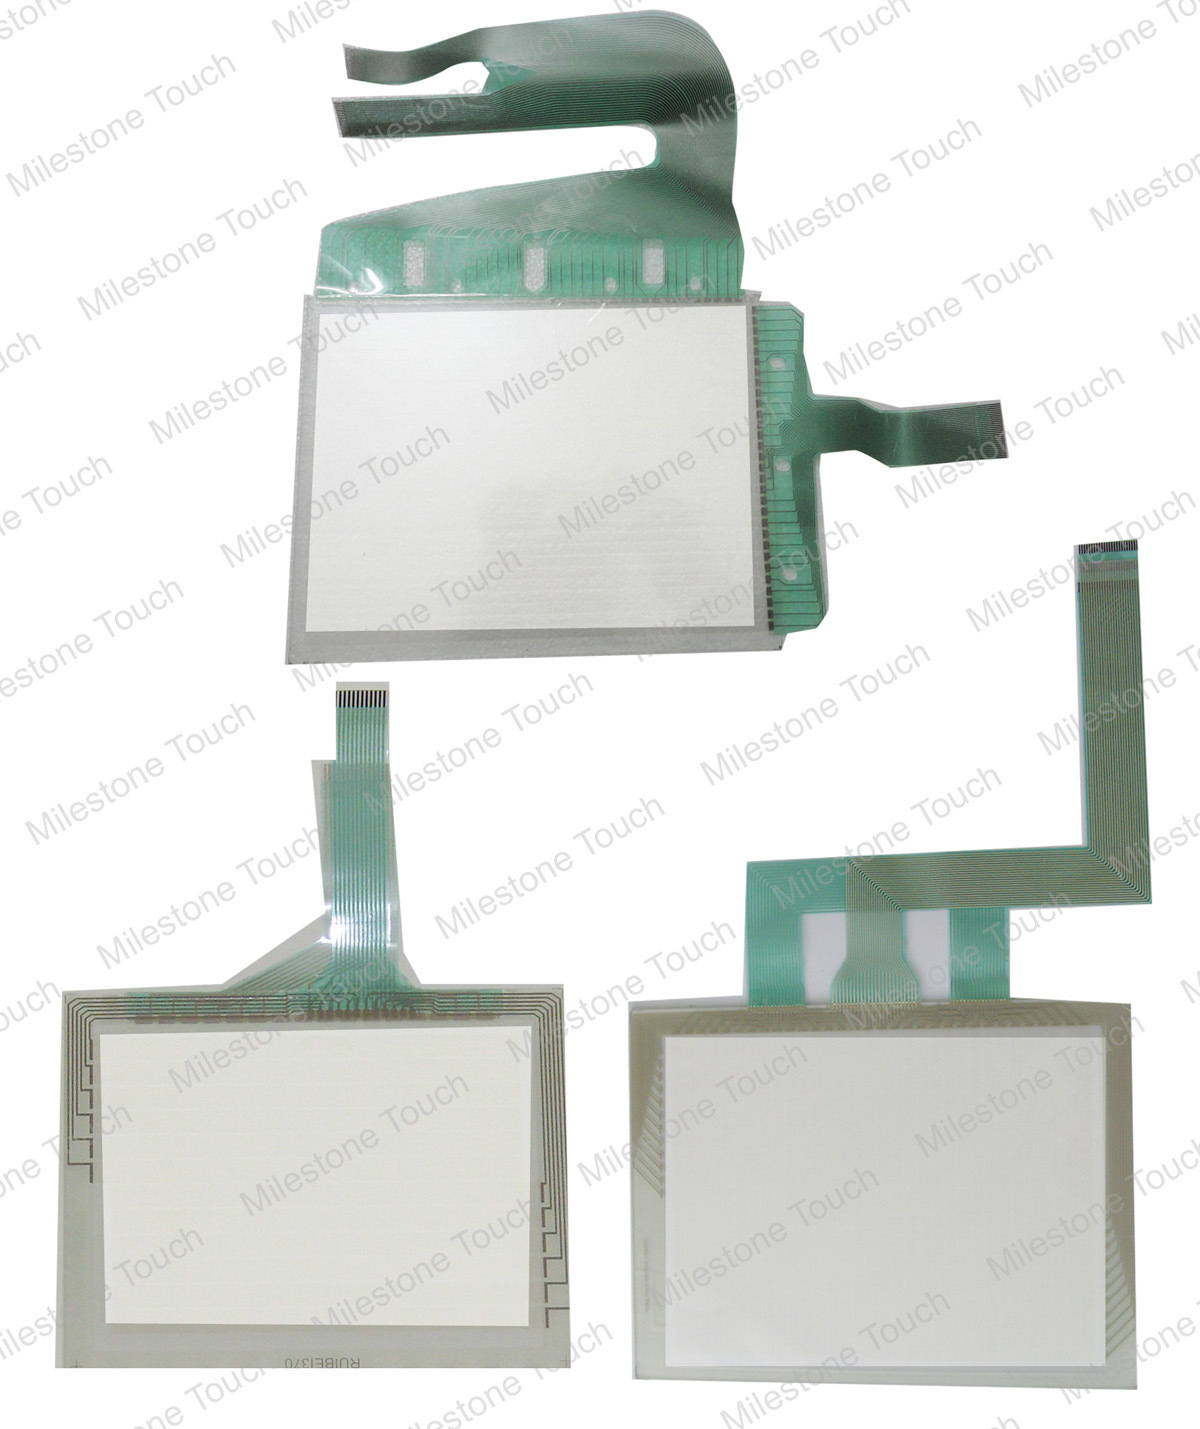 Touch Screen Panel Membrane Glass for PRO-Face 3180053-02 St400-AG41-24V / 3180053-03 St401-AG41-24V / 3180053-04 St402-AG41-24V / 3383102-01 St403-AG41-24V